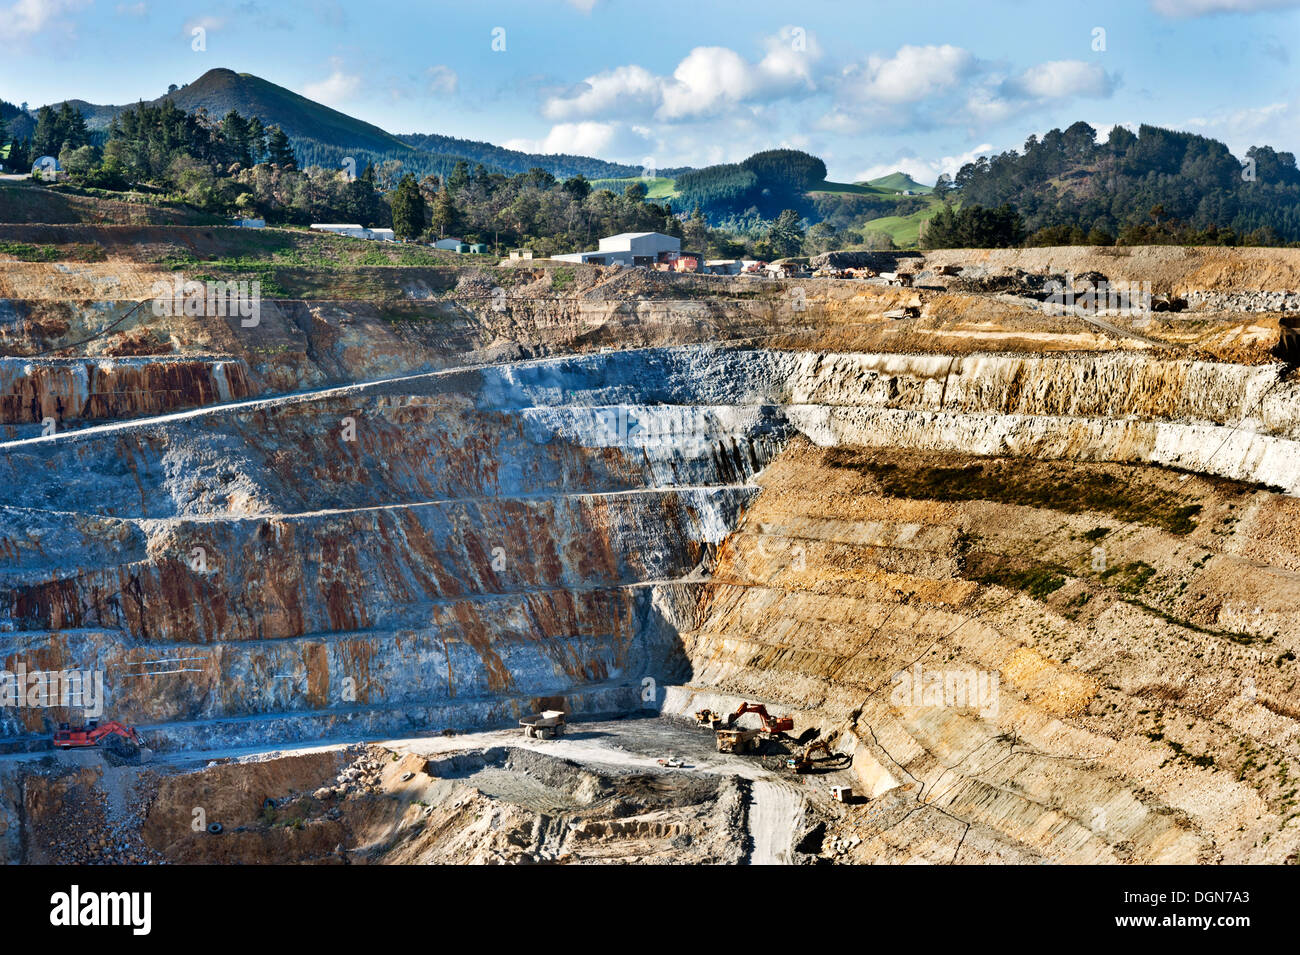 The huge opencast Martha Gold Mine, Waihi, North Island, New Zealand. The mine is to be restored as a lake. - Stock Image